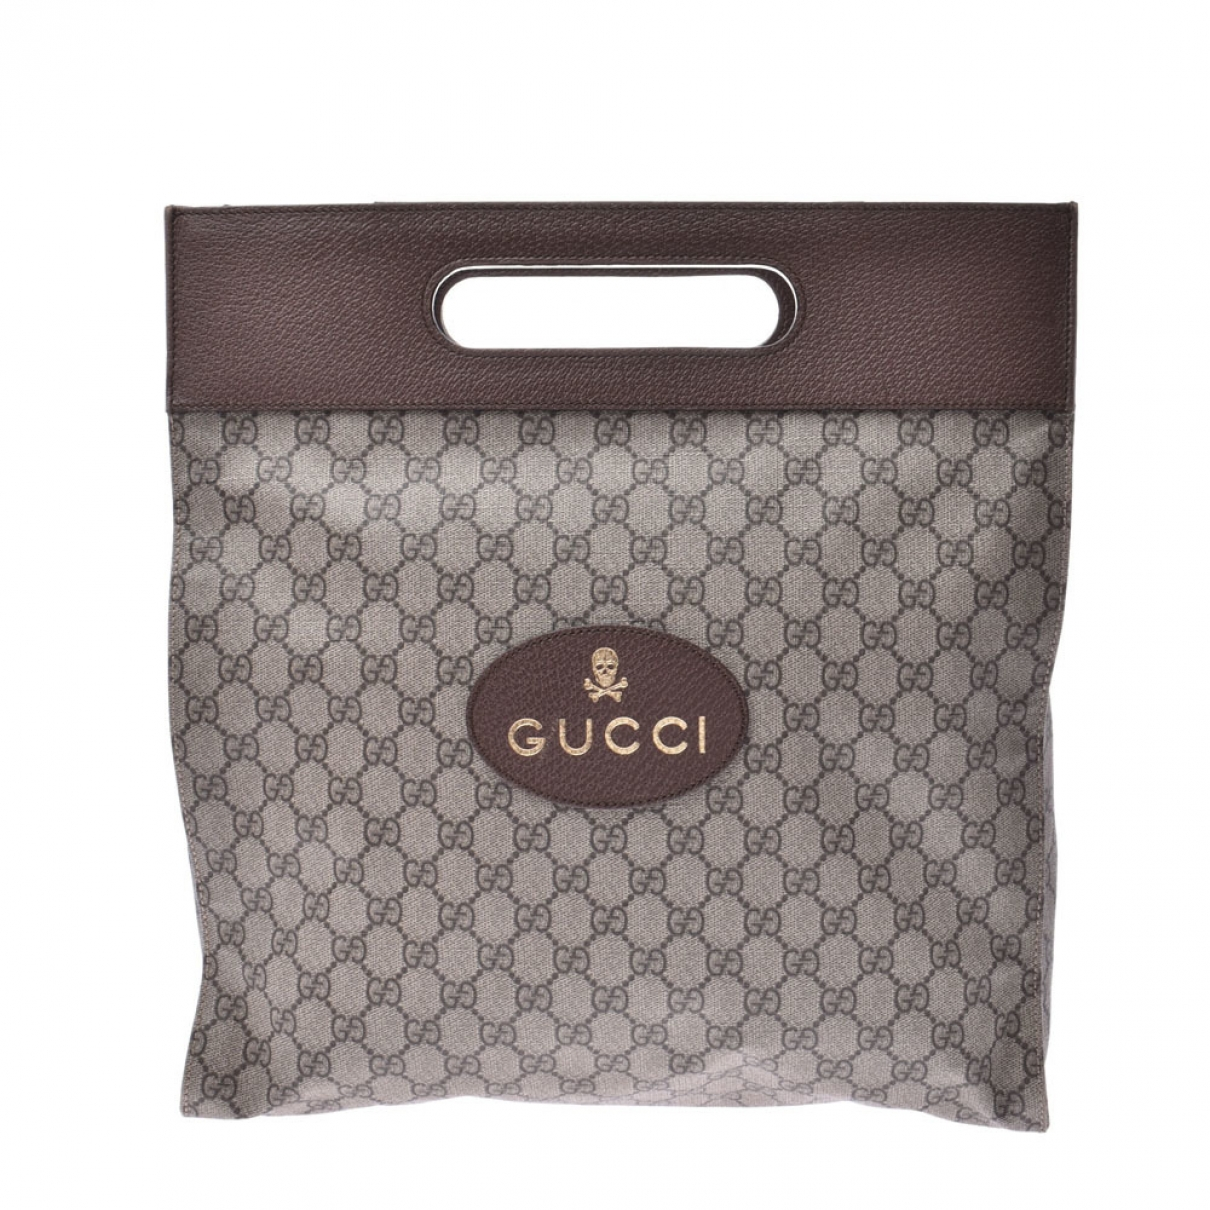 Gucci \N Beige Cloth handbag for Women \N